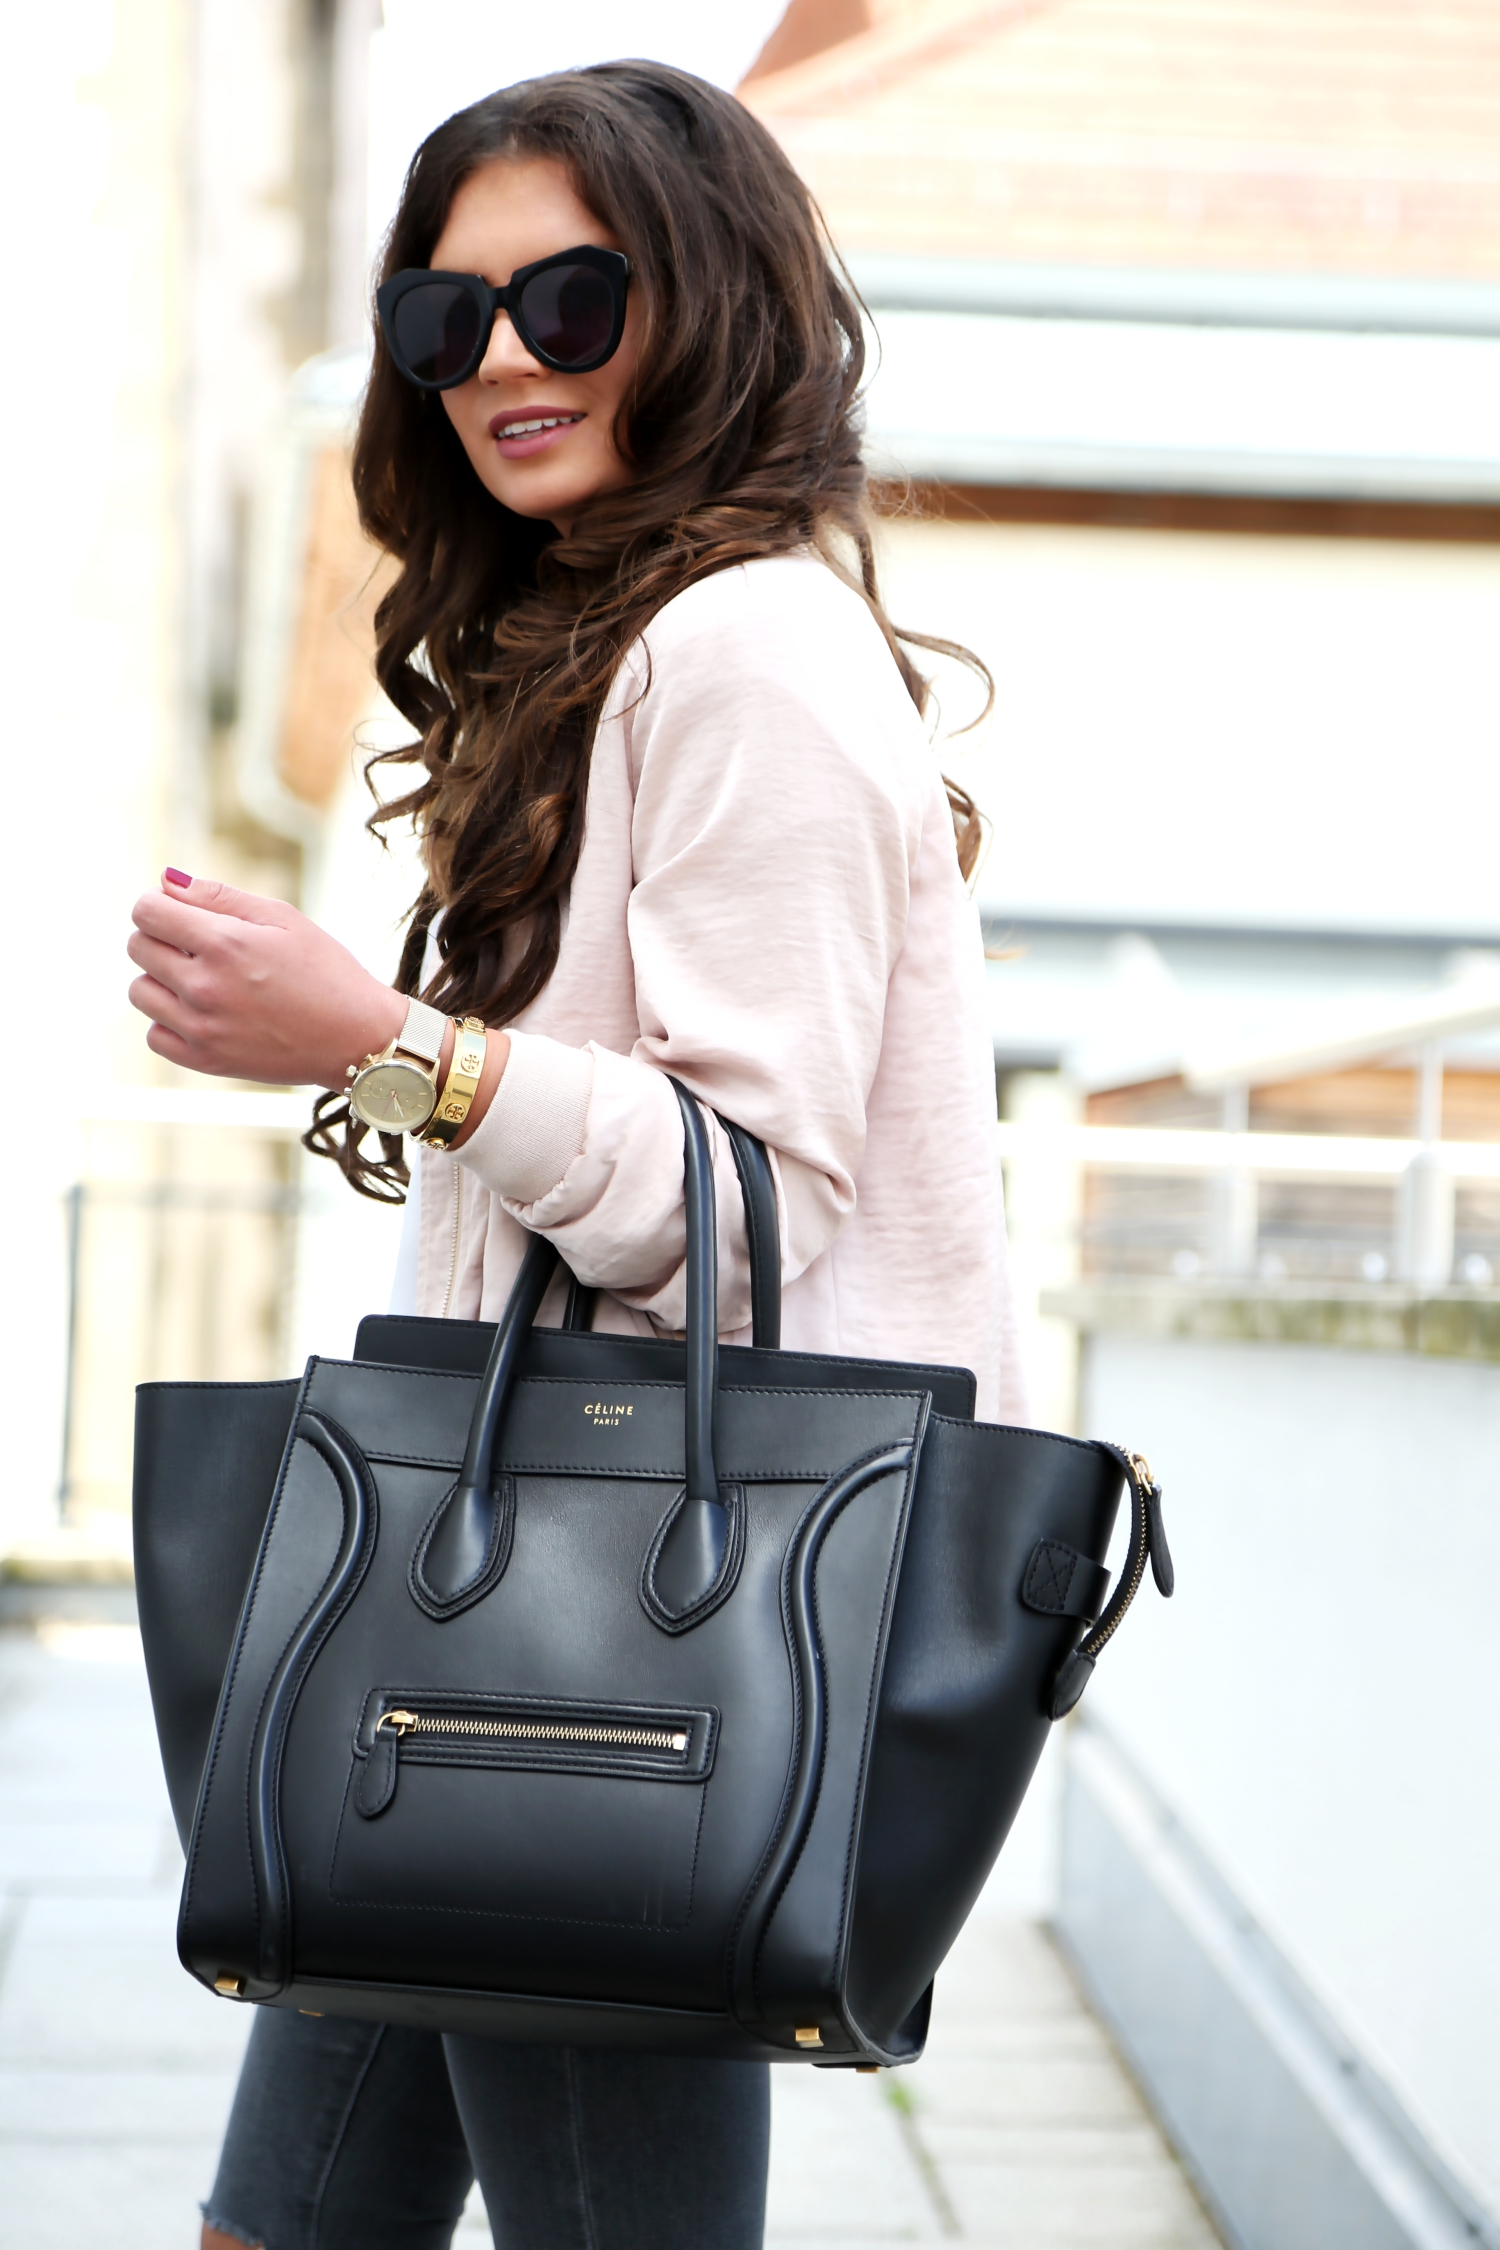 outfit-details-celine-luggage-karen-walker-sunglasses